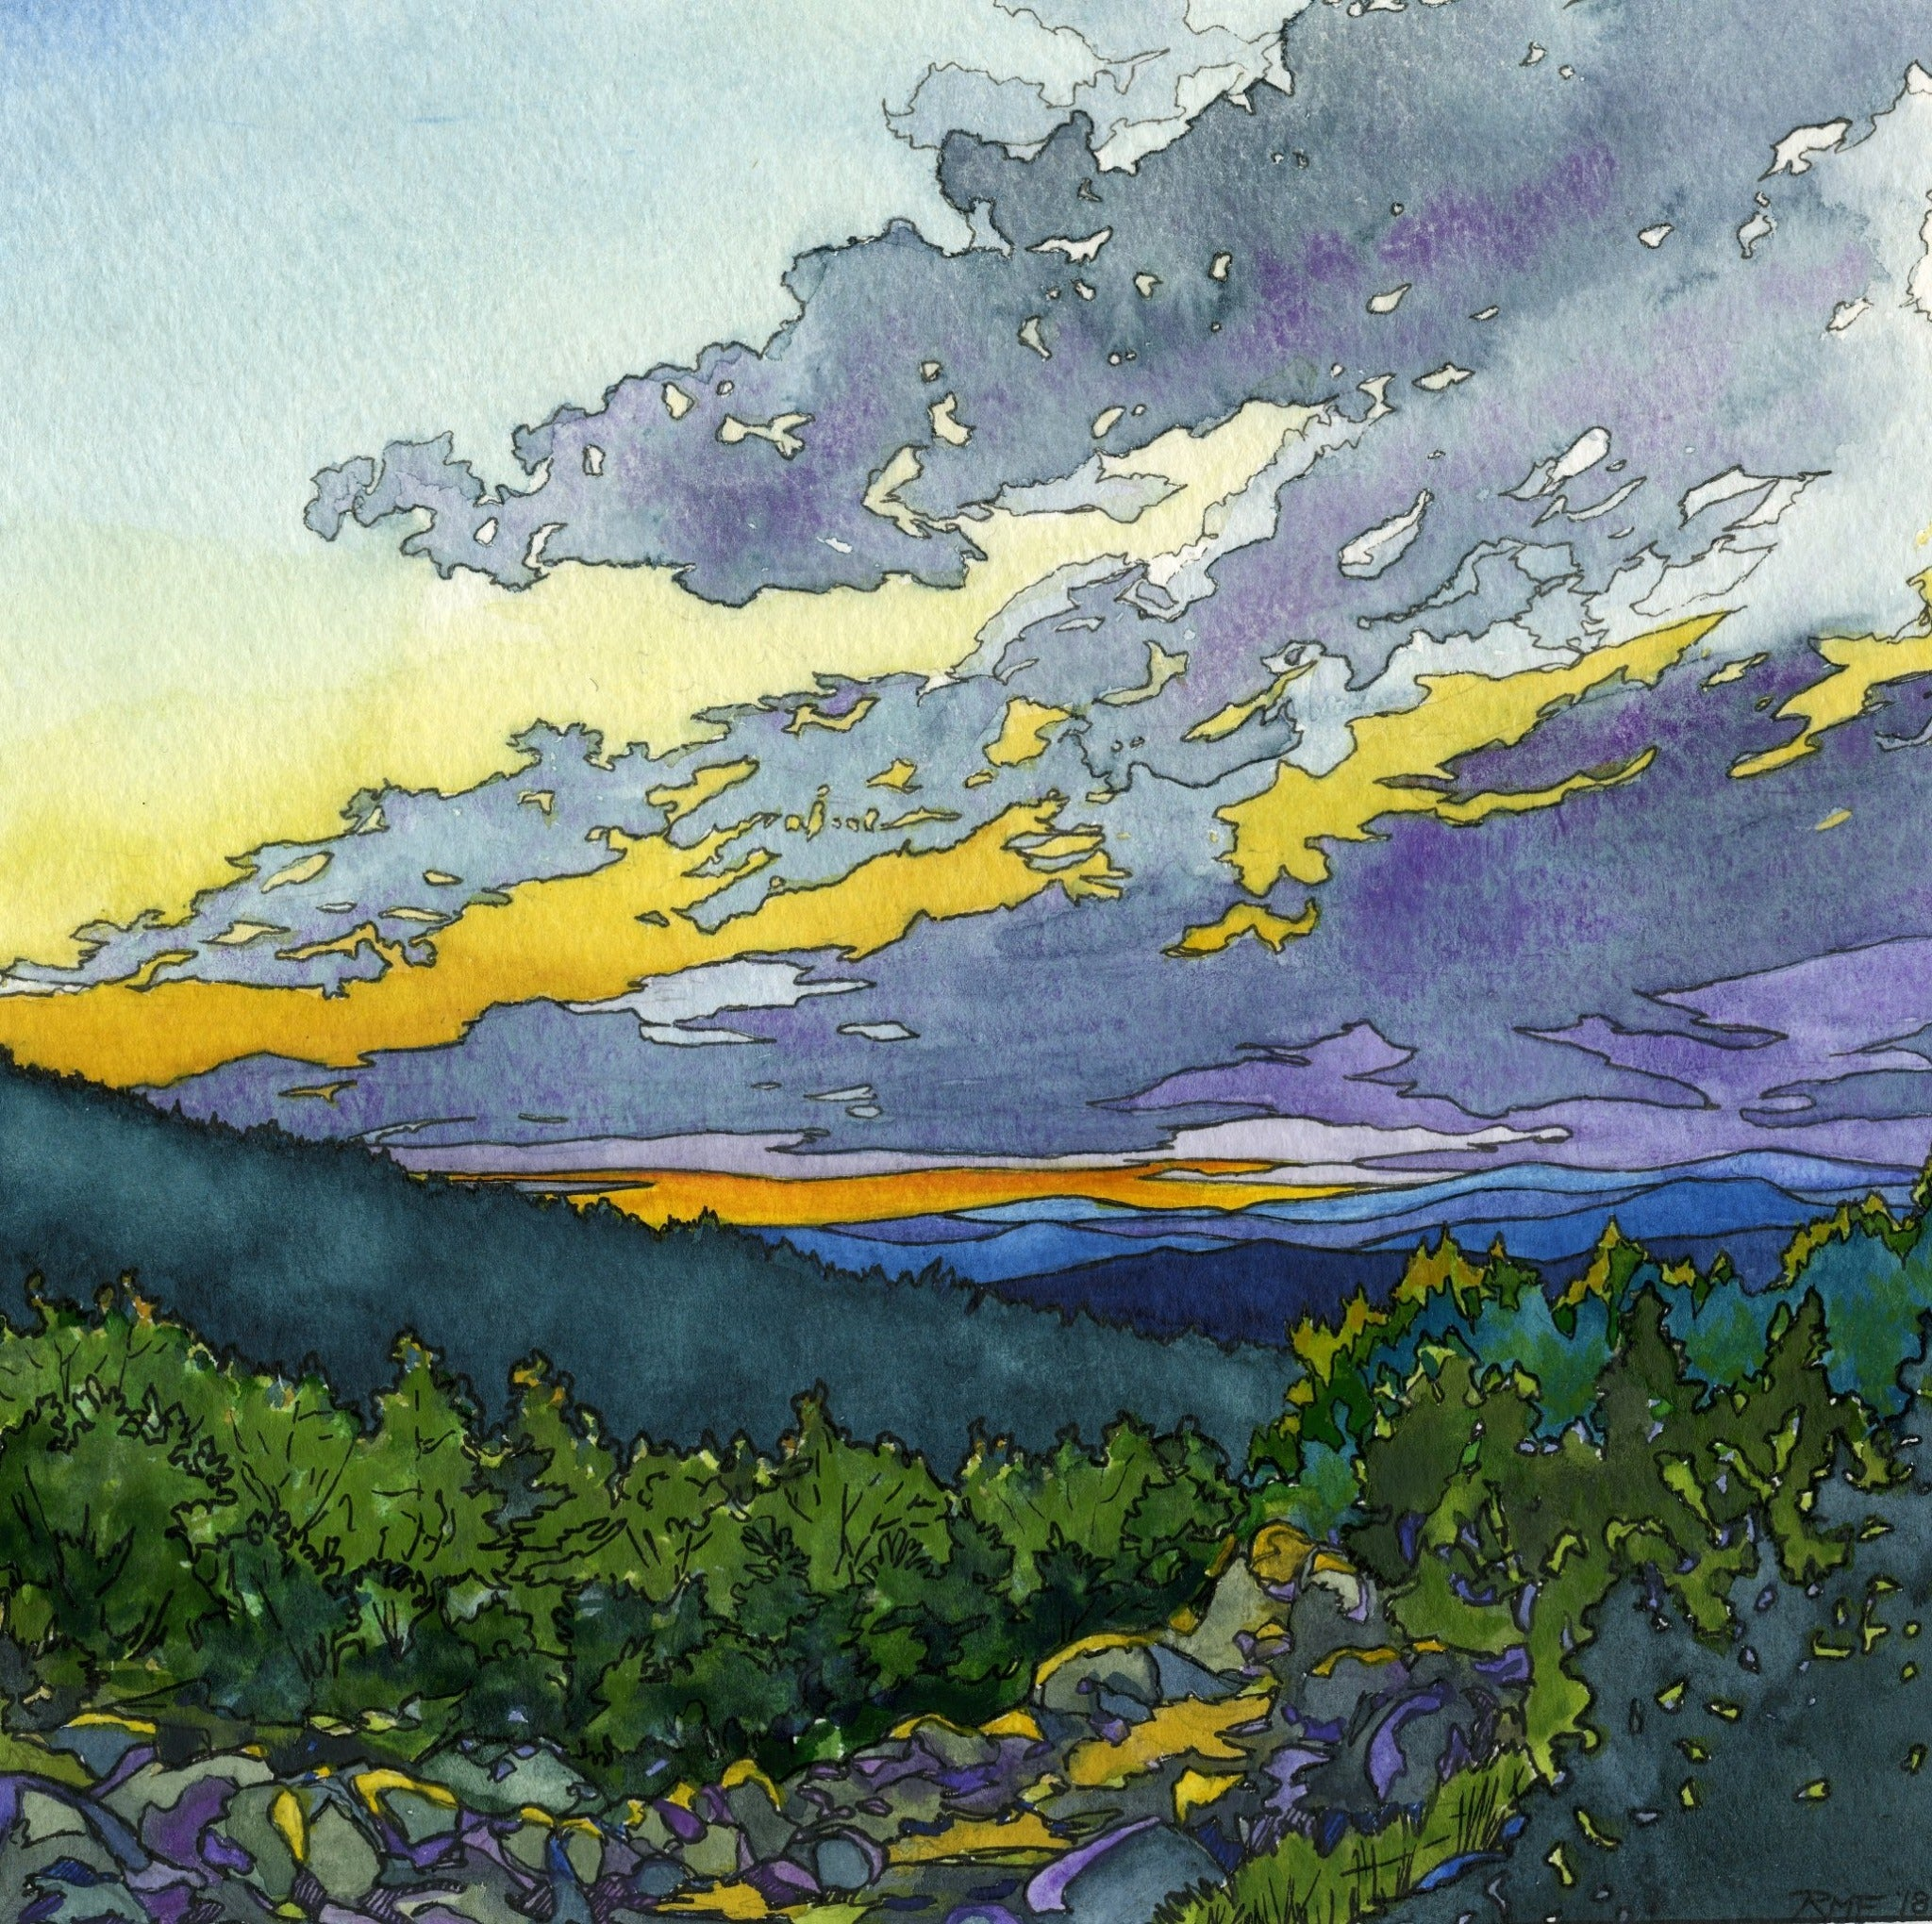 """Northern Sunset"" is a 10 by 10 inch square fine art print on paper,based on an original watercolor and ink painting by Rebecca M. Fullerton. It depicts glowing yellow and orange sunset colors among purple clouds, as seen from a mountainside."